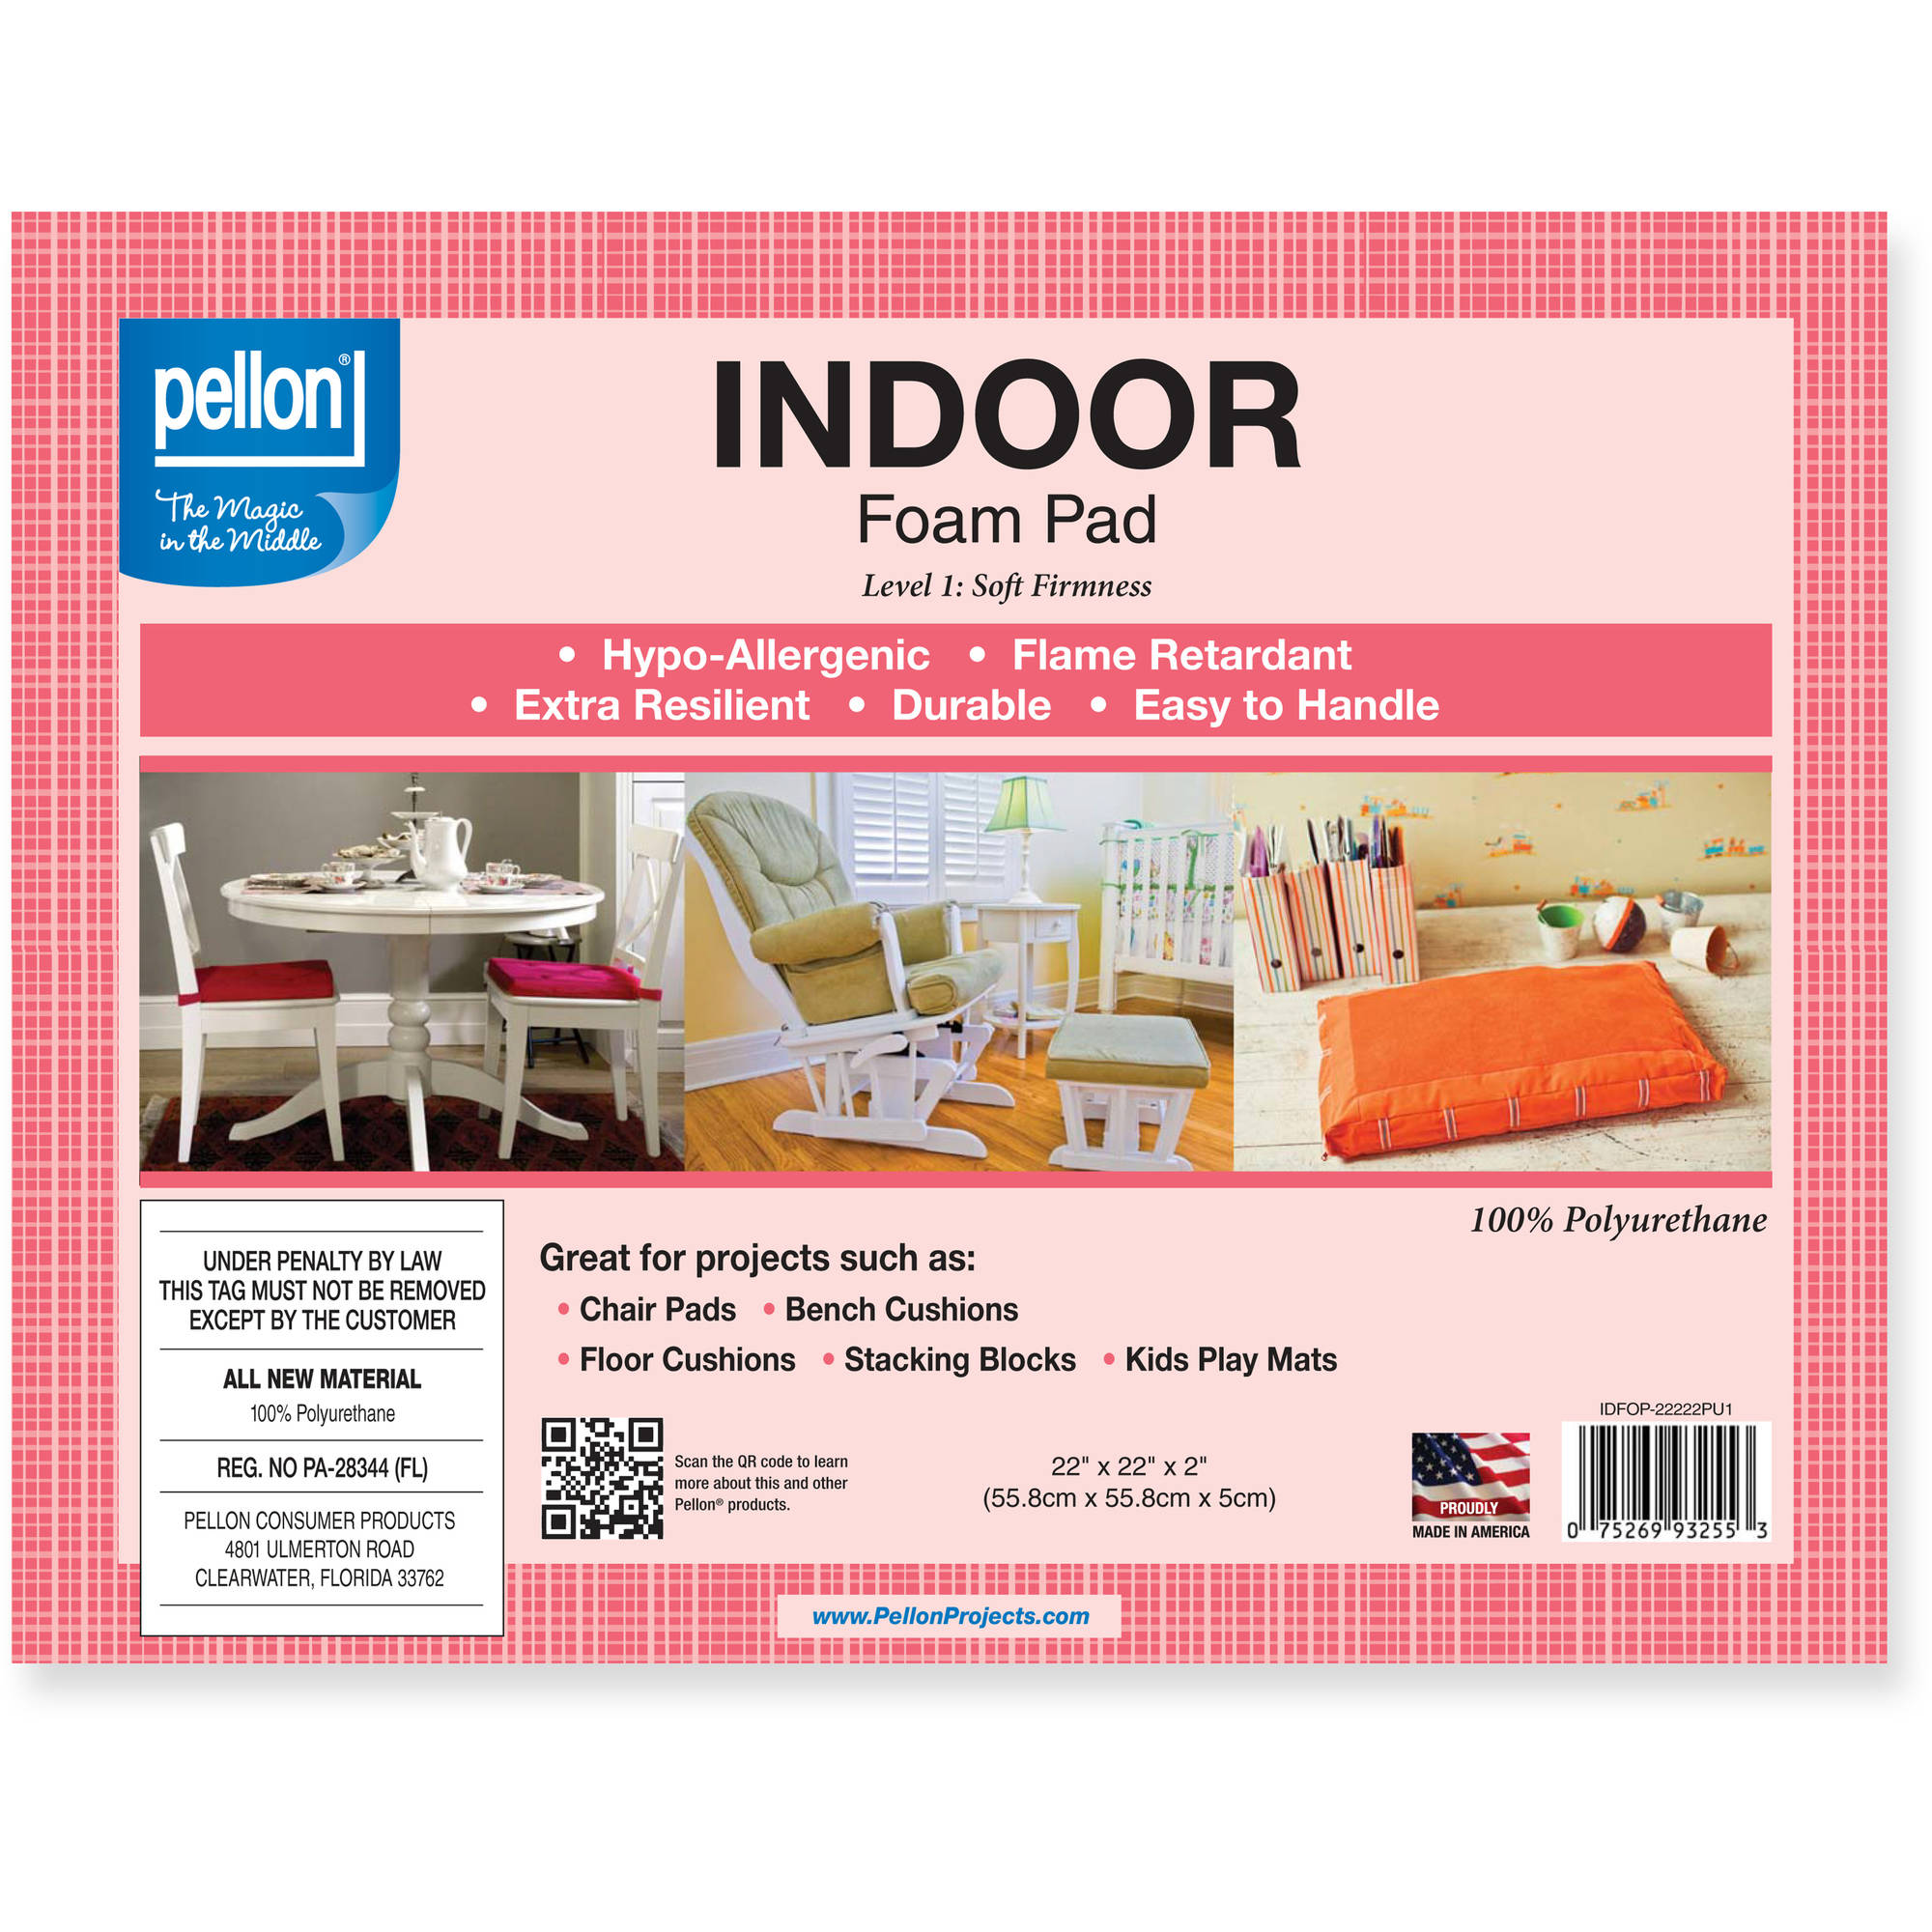 Pellon Indoor Foam Pad